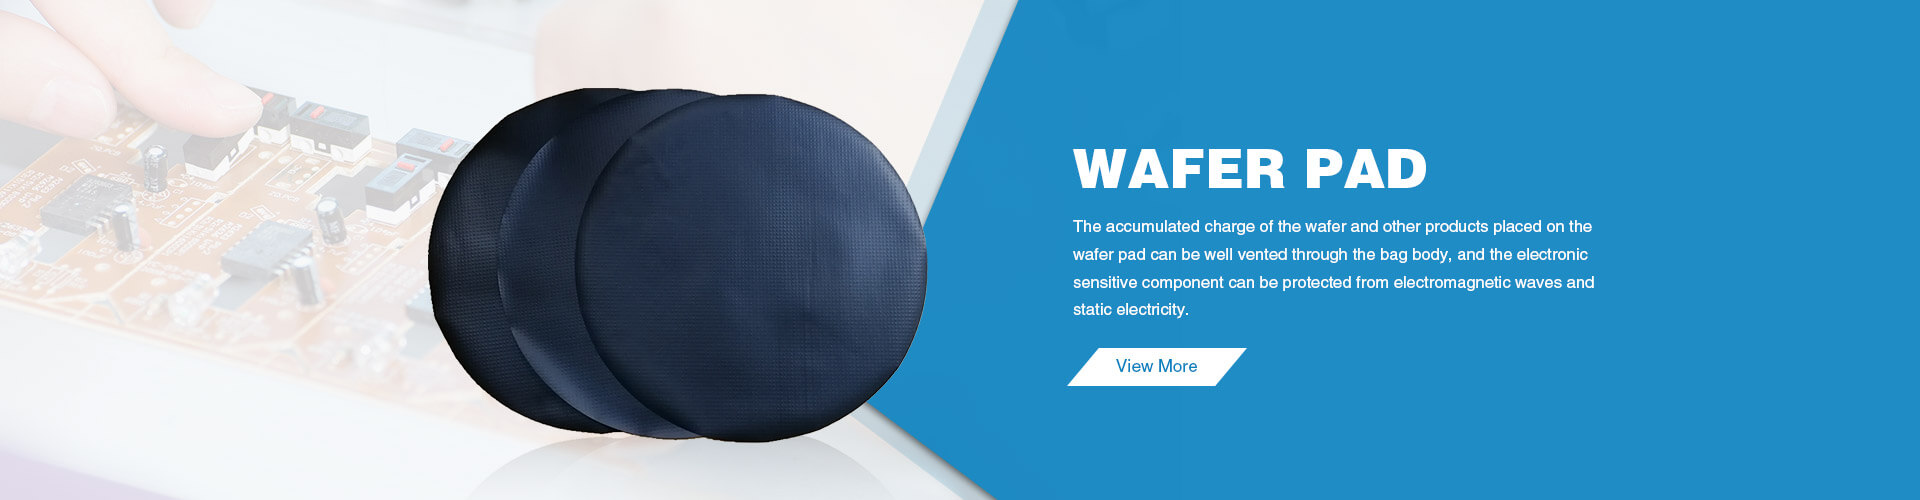 Wafer Pad